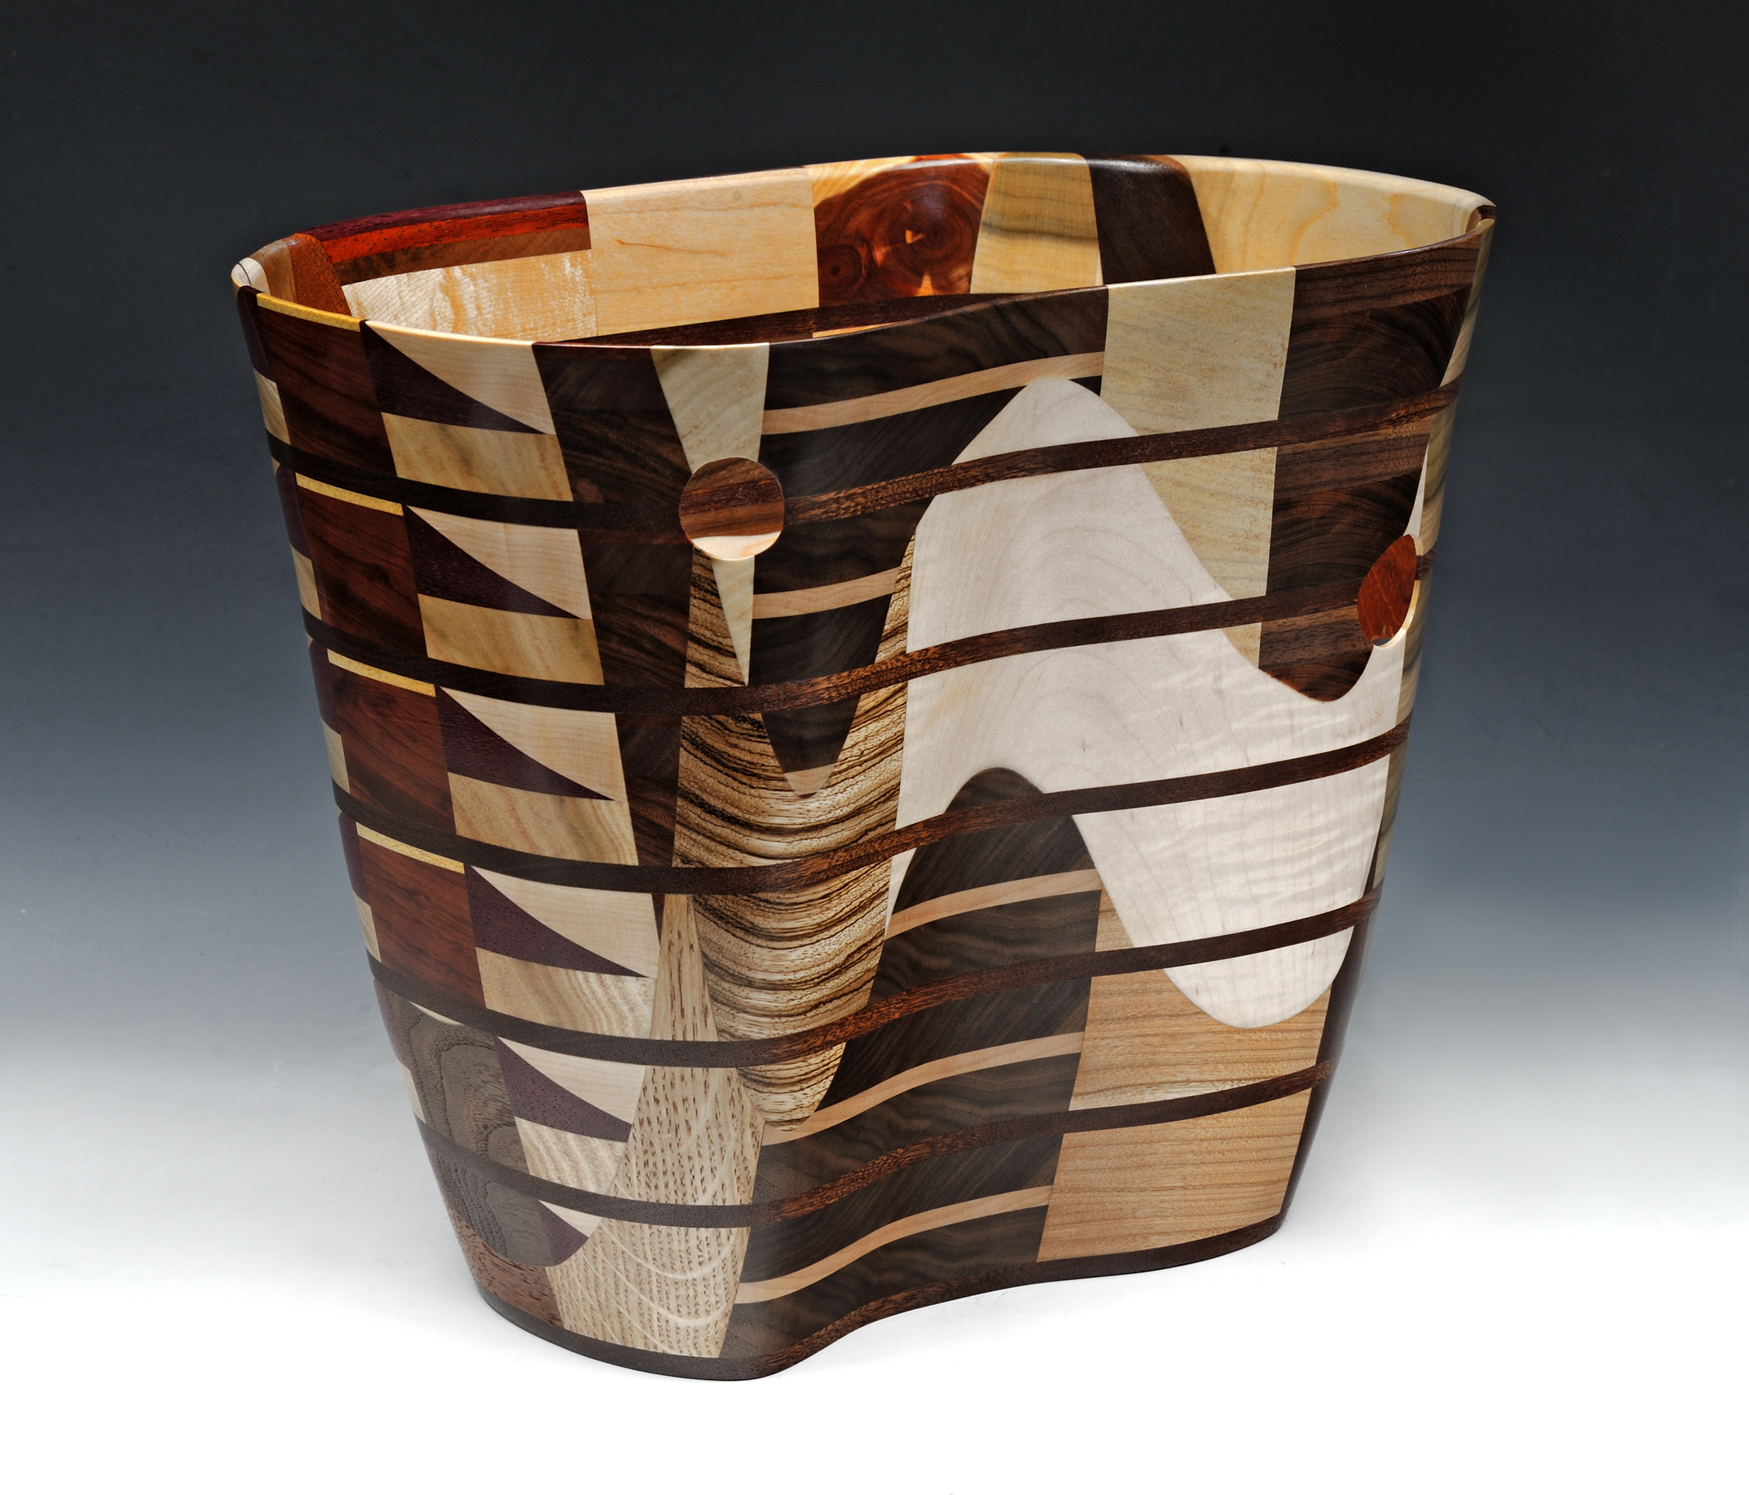 Mixed Woods Vessel No. 2